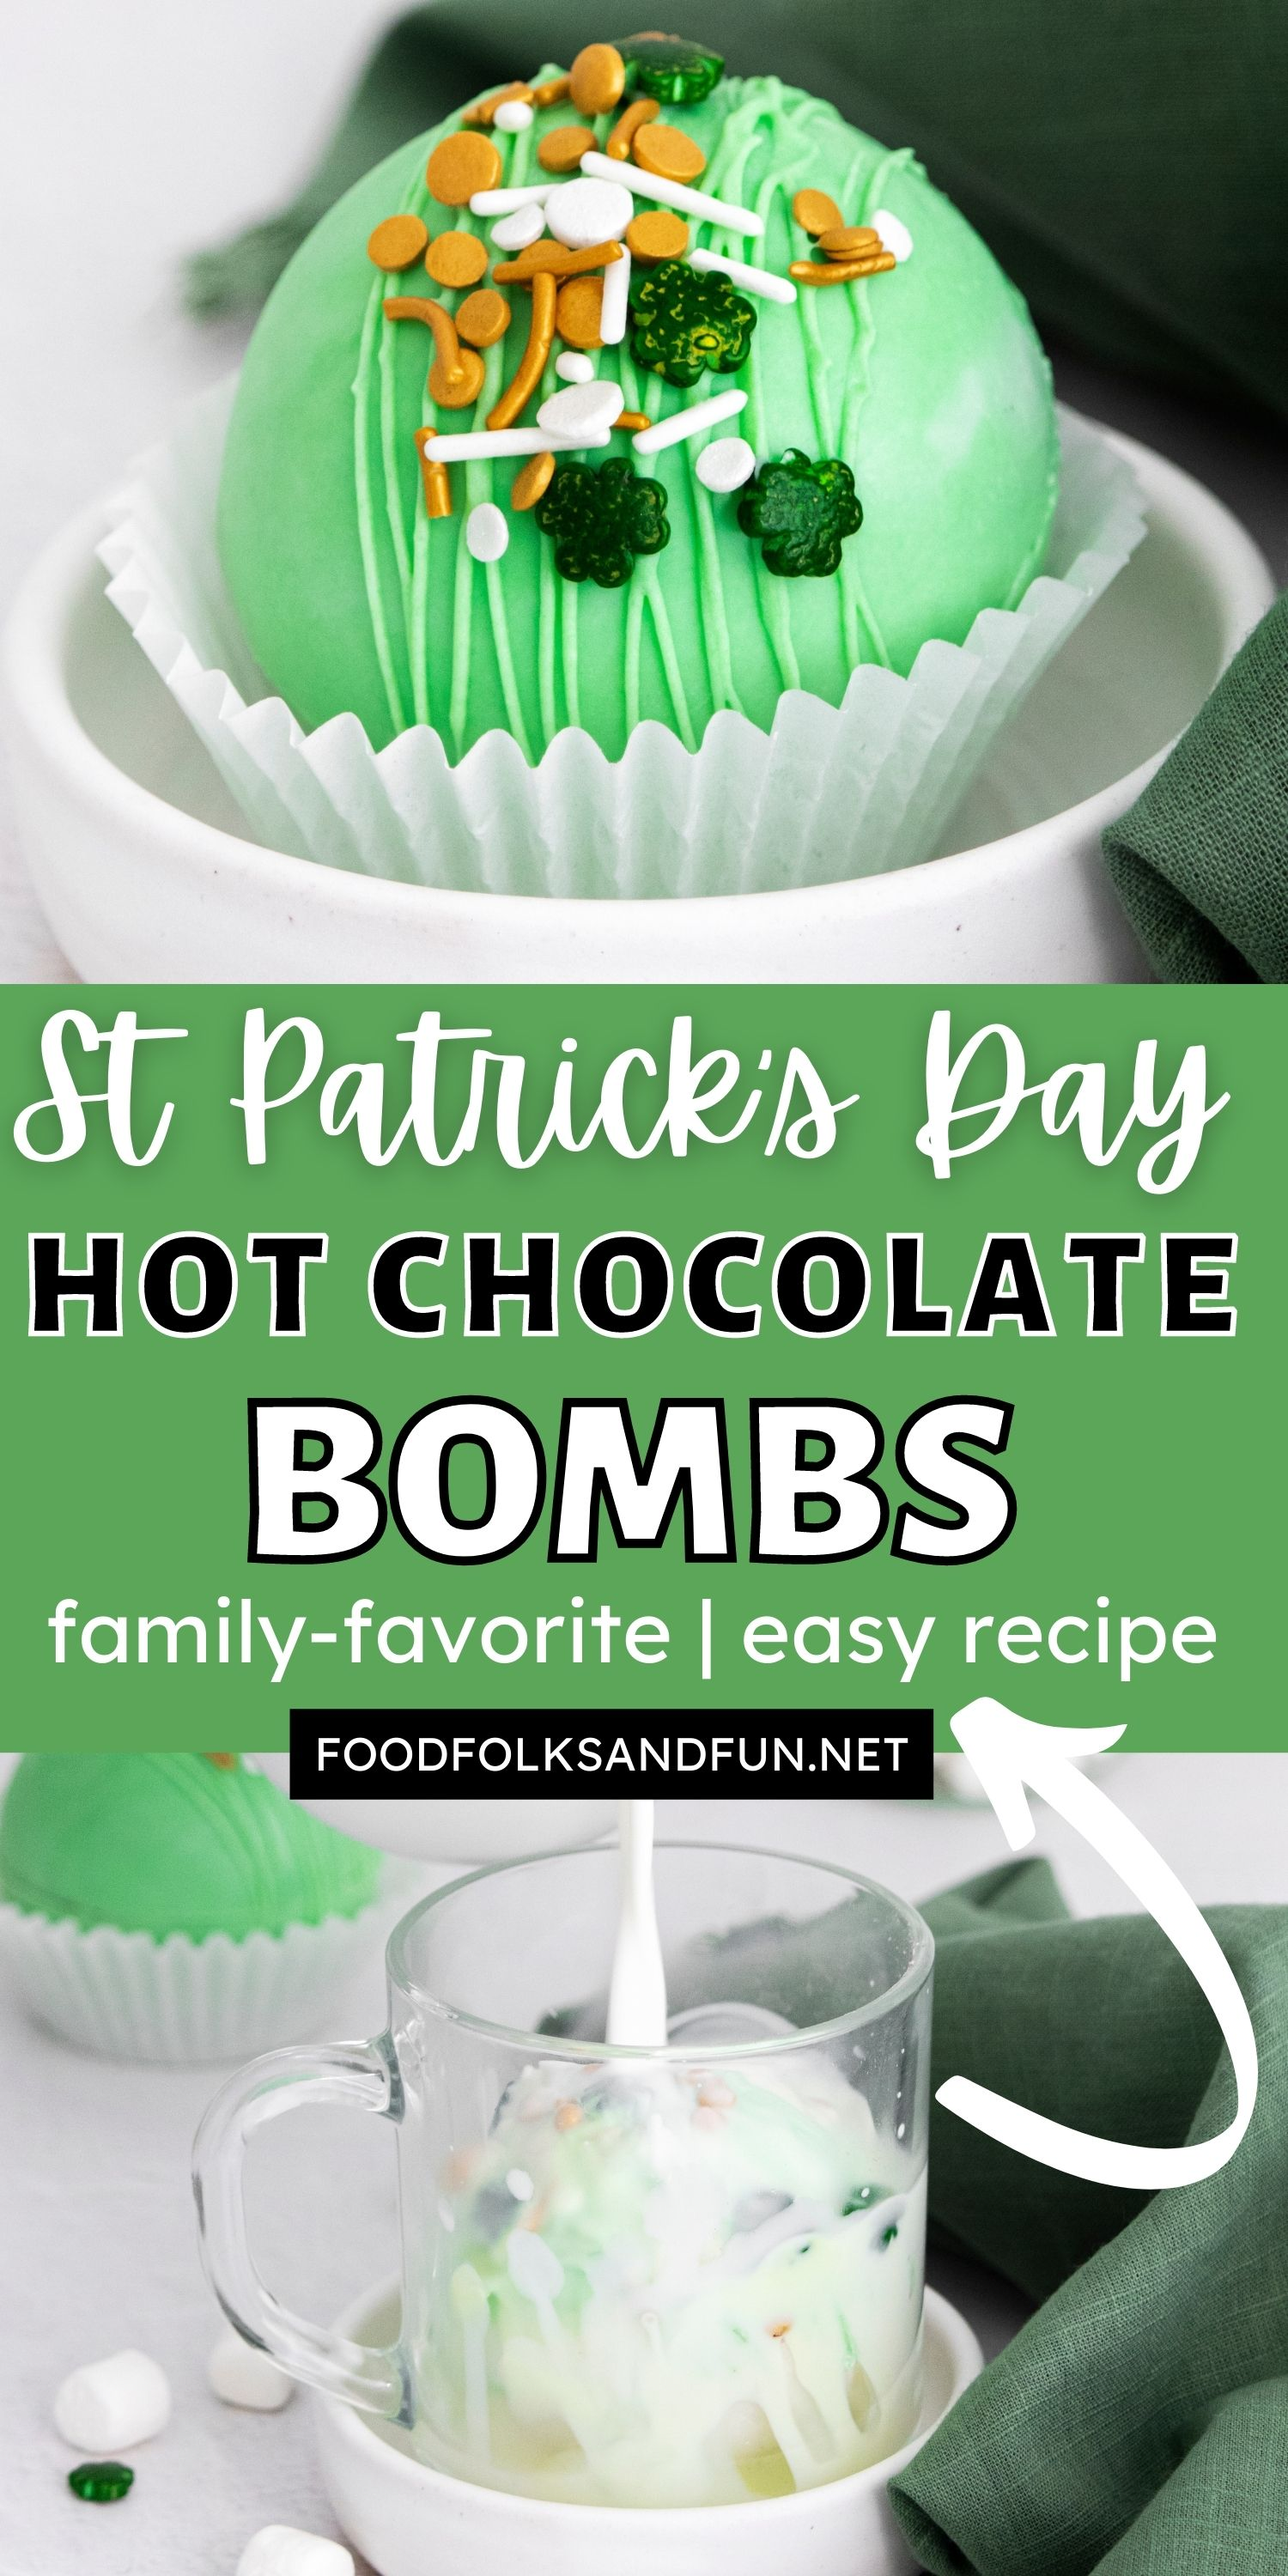 These St Patrick's Hot Chocolate Bombs are the perfect combination of milk chocolate and white chocolate. They're so fun to gift! via @foodfolksandfun